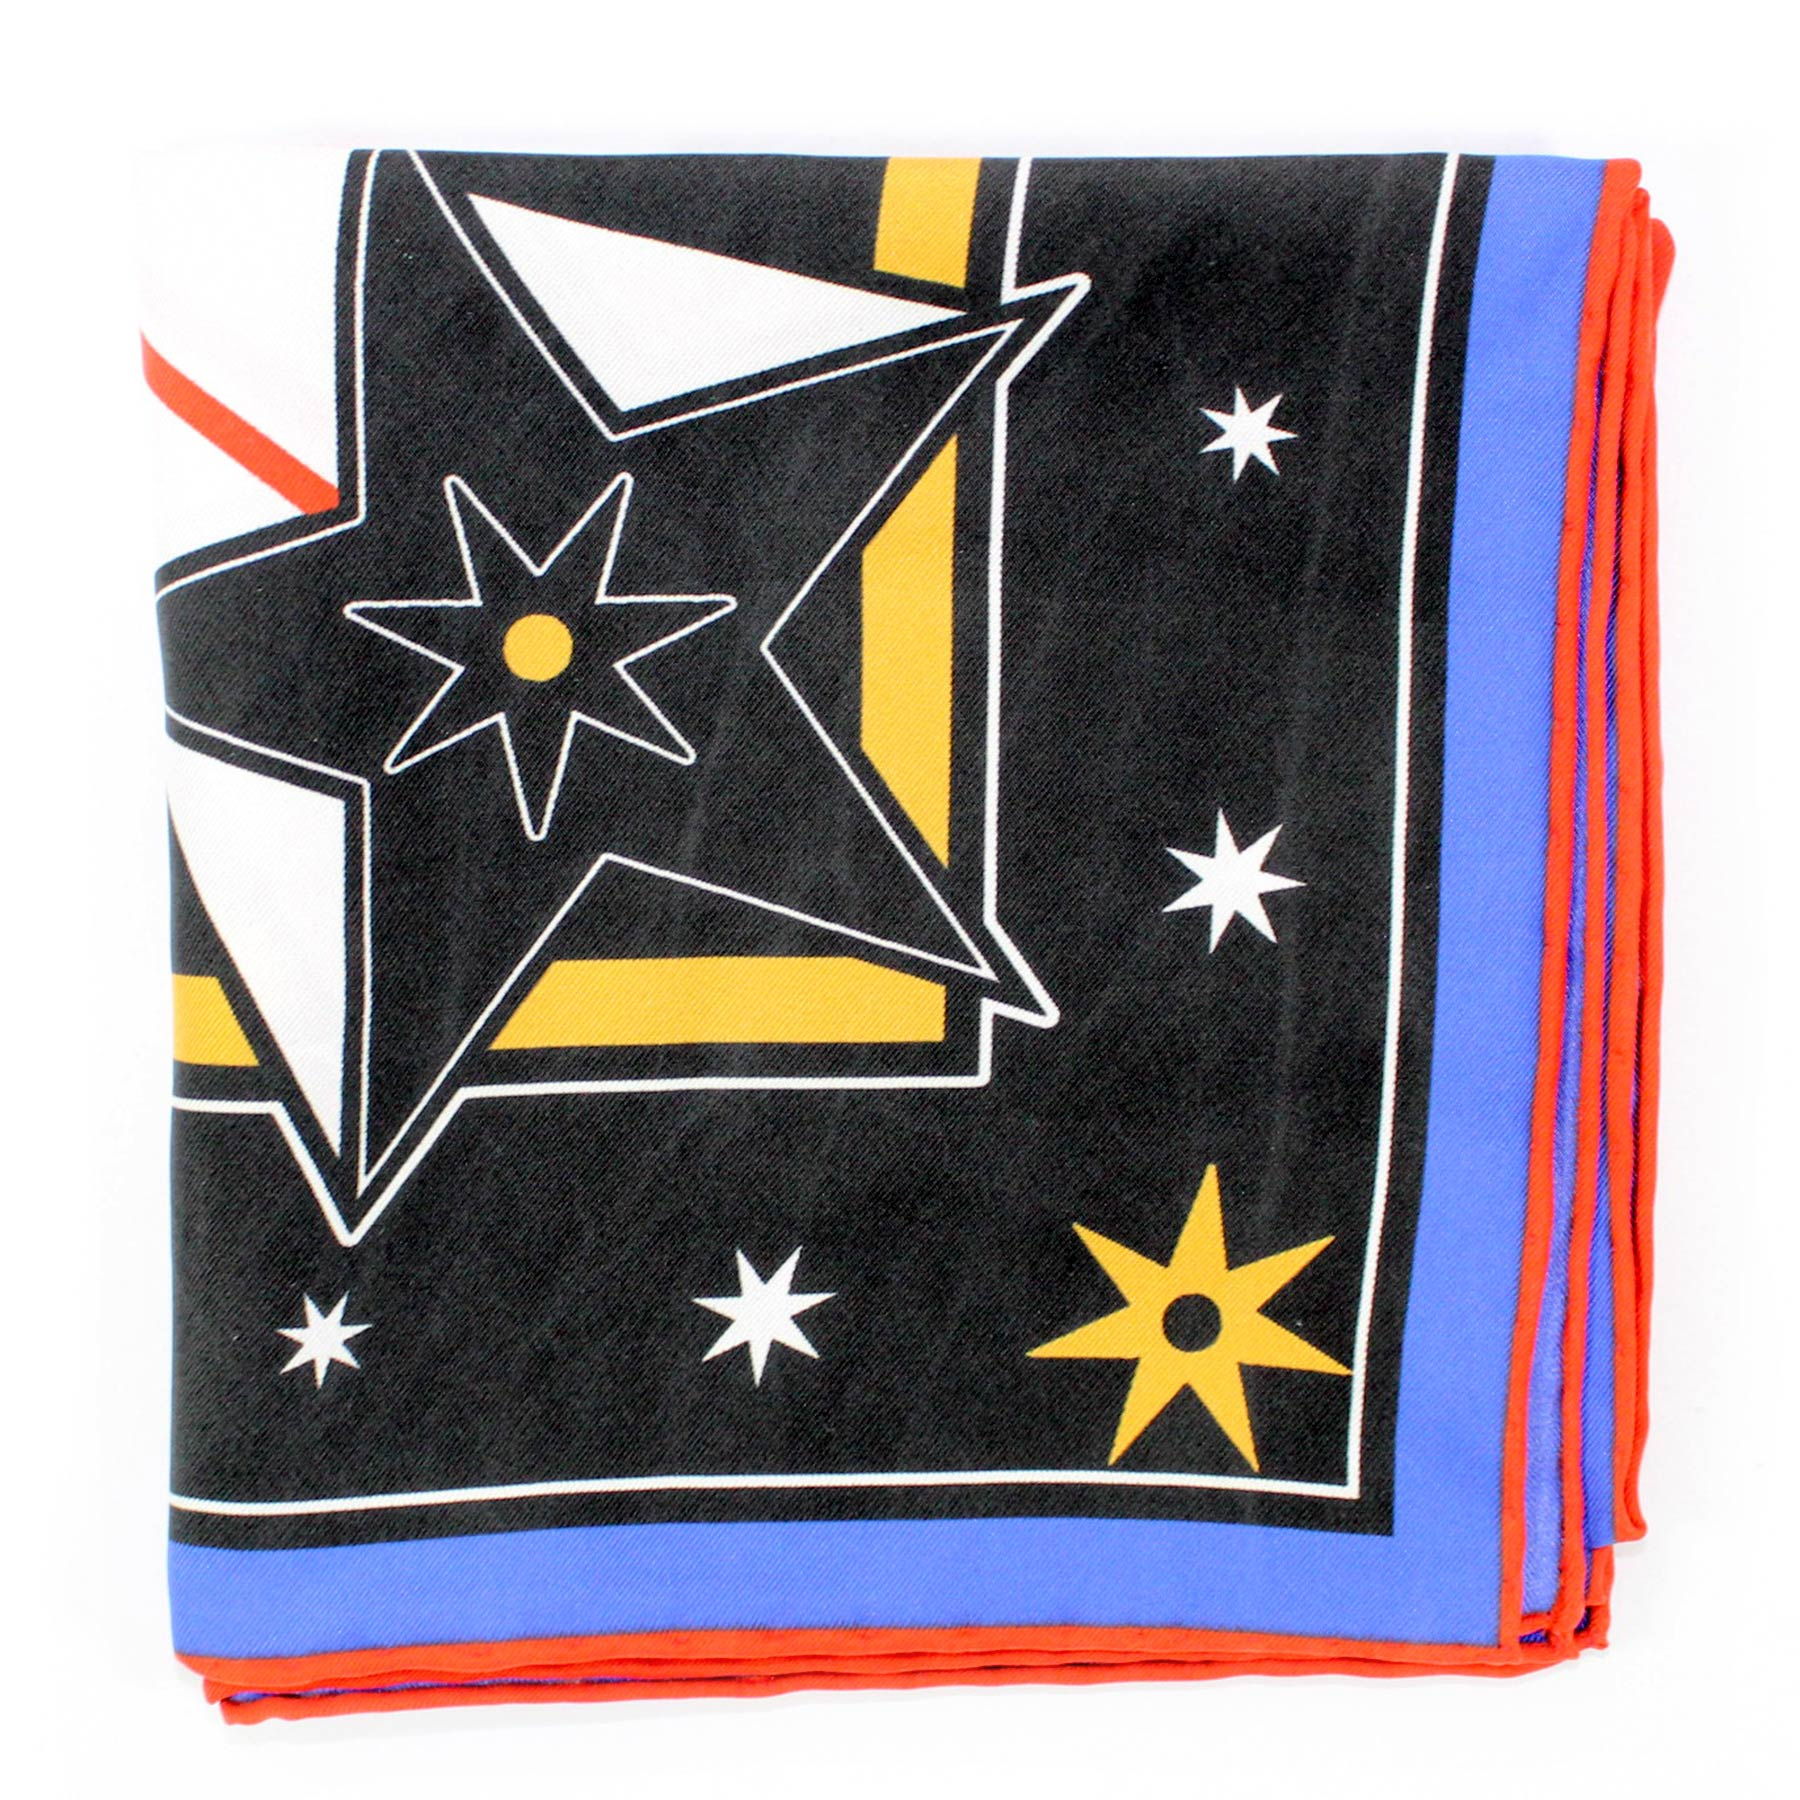 Givenchy Scarf Black Design - Twill Silk Square Scarf